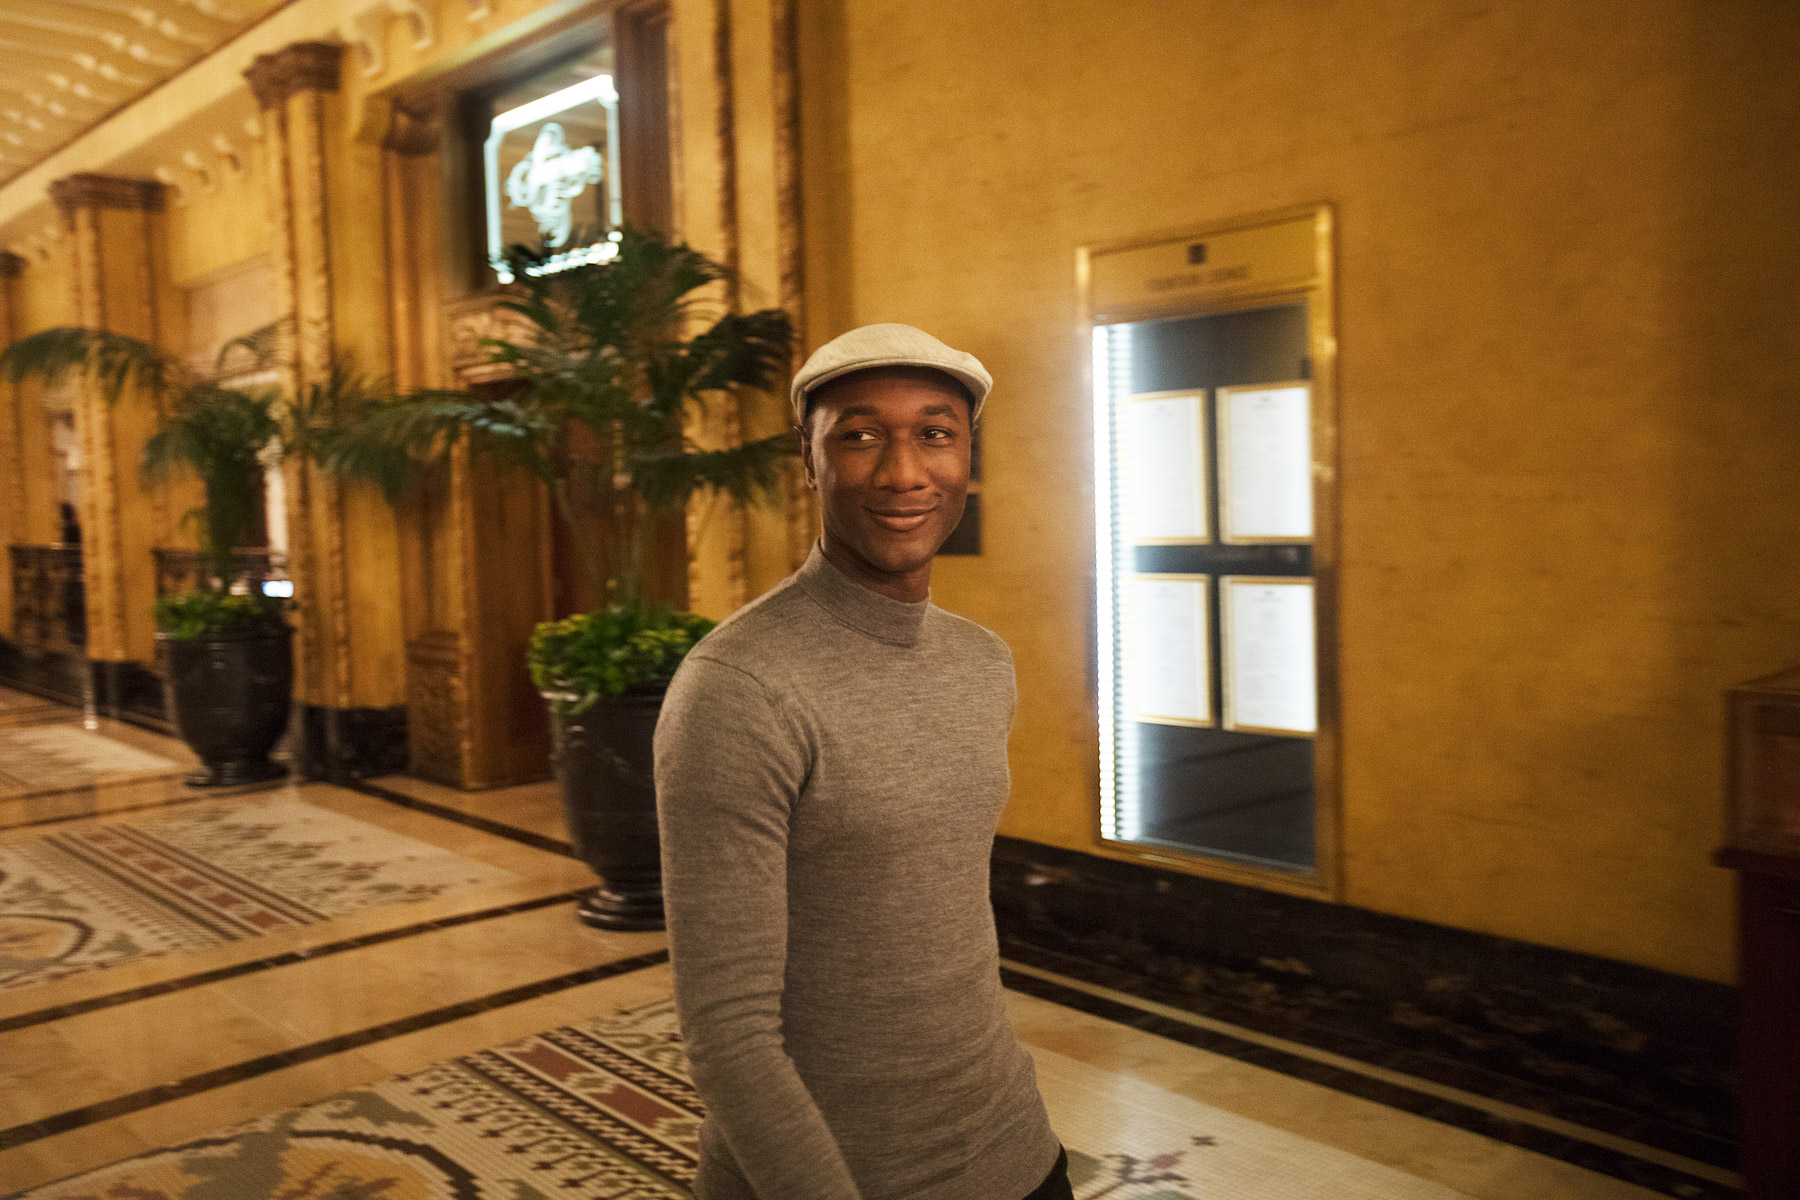 Aloe Blacc Hilton Spotify Live Nation Music Happens Here by Boston based commercial celebrity photographer Brian Nevins